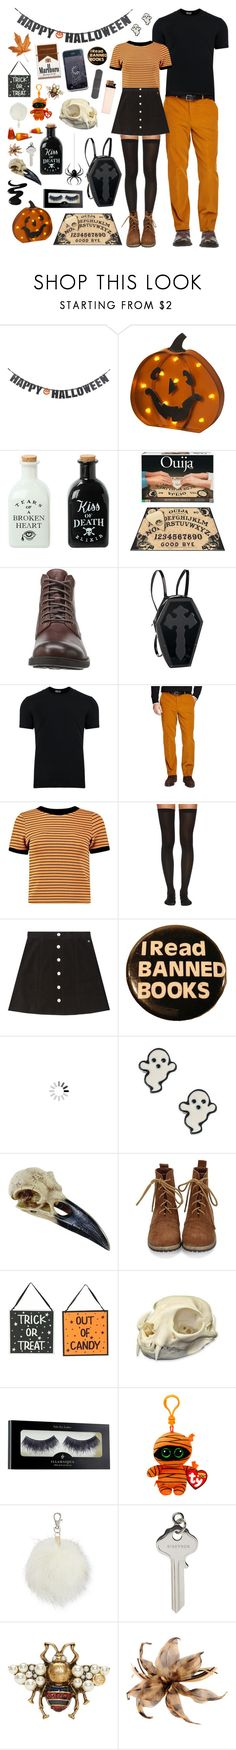 """""""Orange autumn cuties"""" by pastelprincess152 ❤ liked on Polyvore featuring Crate and Barrel, Hot Topic, Dolce&Gabbana, Brooks Brothers, Boohoo, Wolford, AG Adriano Goldschmied, claire's, Clips and Corvus"""